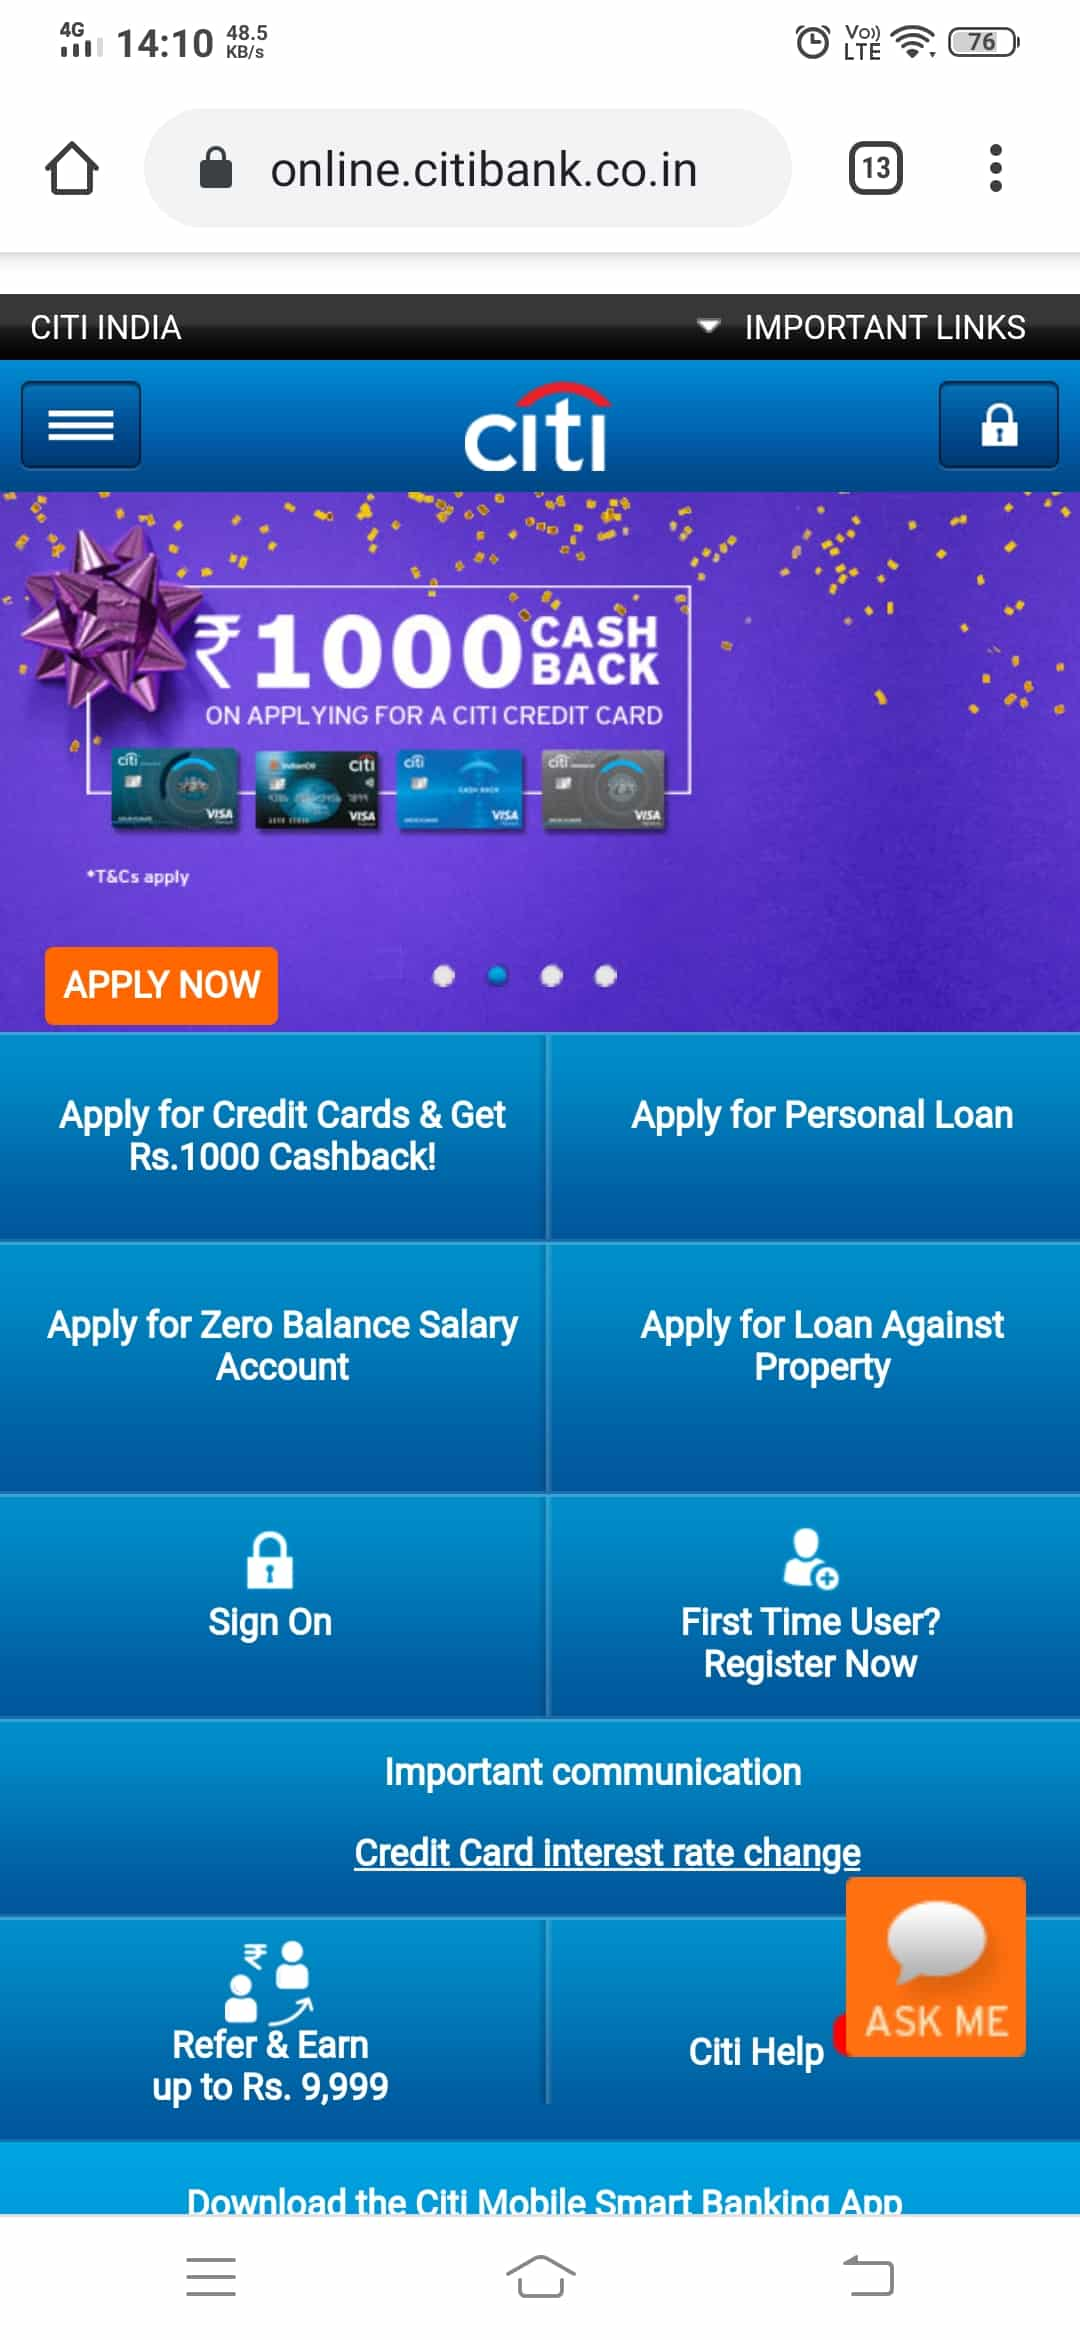 10 Easy Ways of CitiBank Credit Card Online Payment 2020